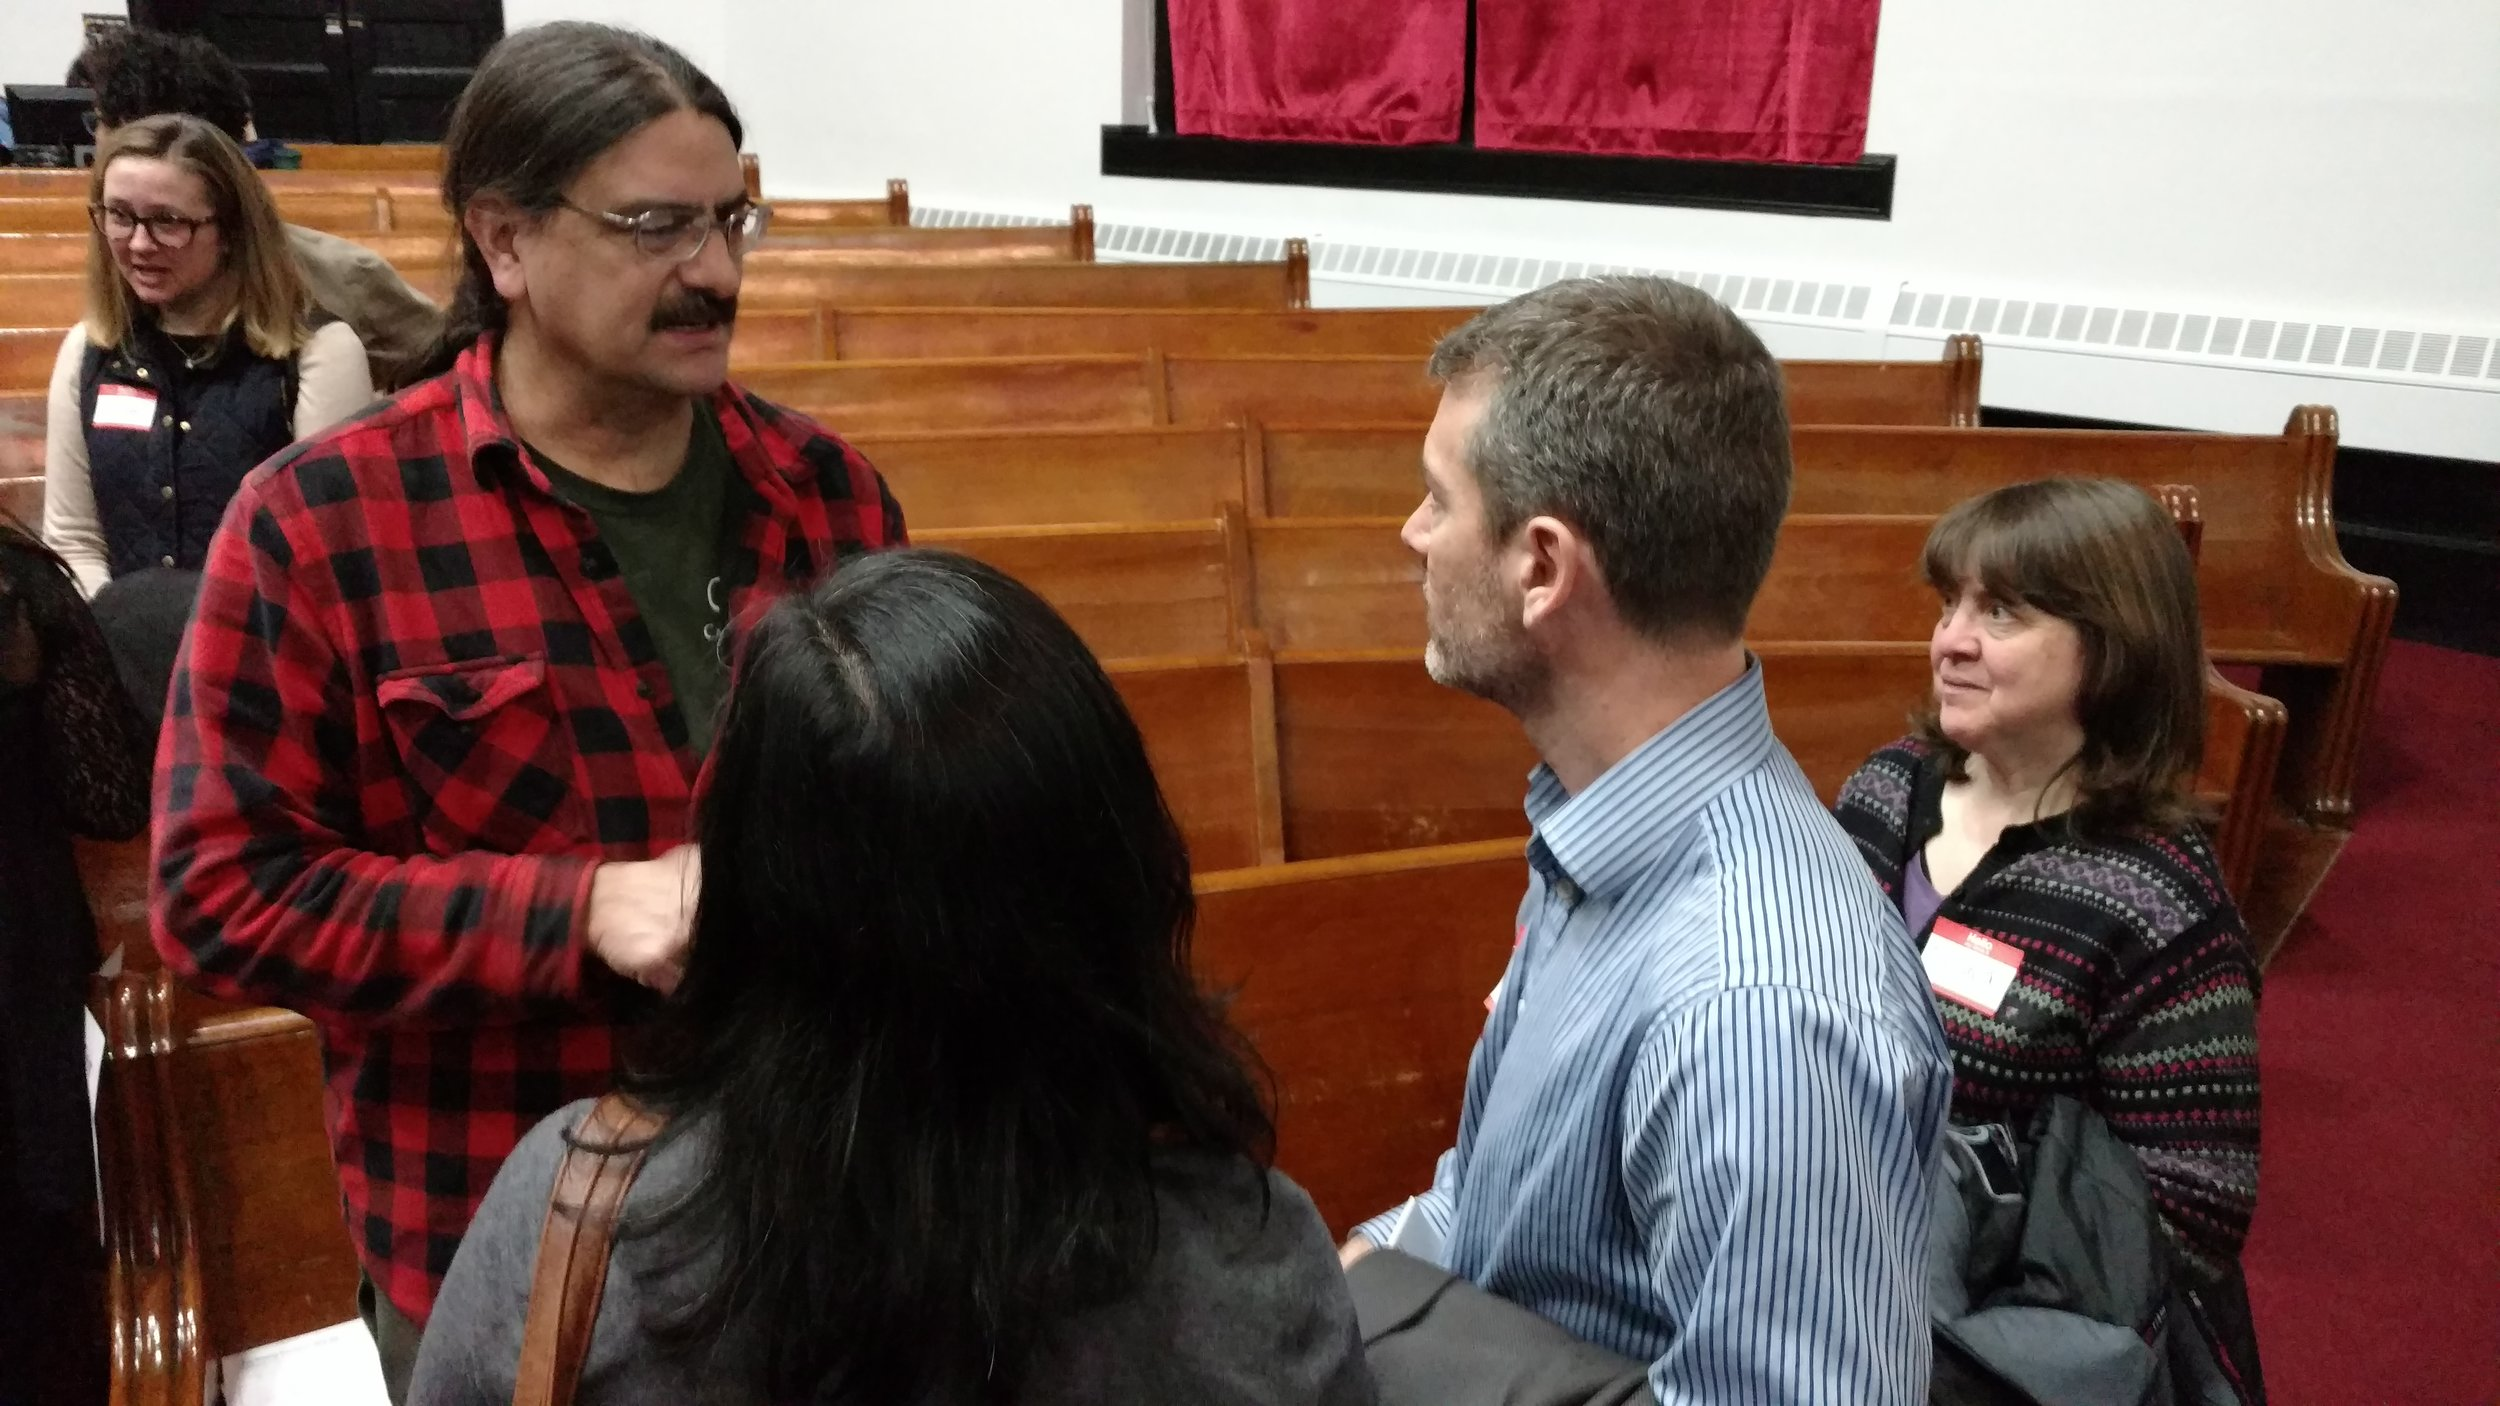 Neighbors and board members meet and mingle after the program